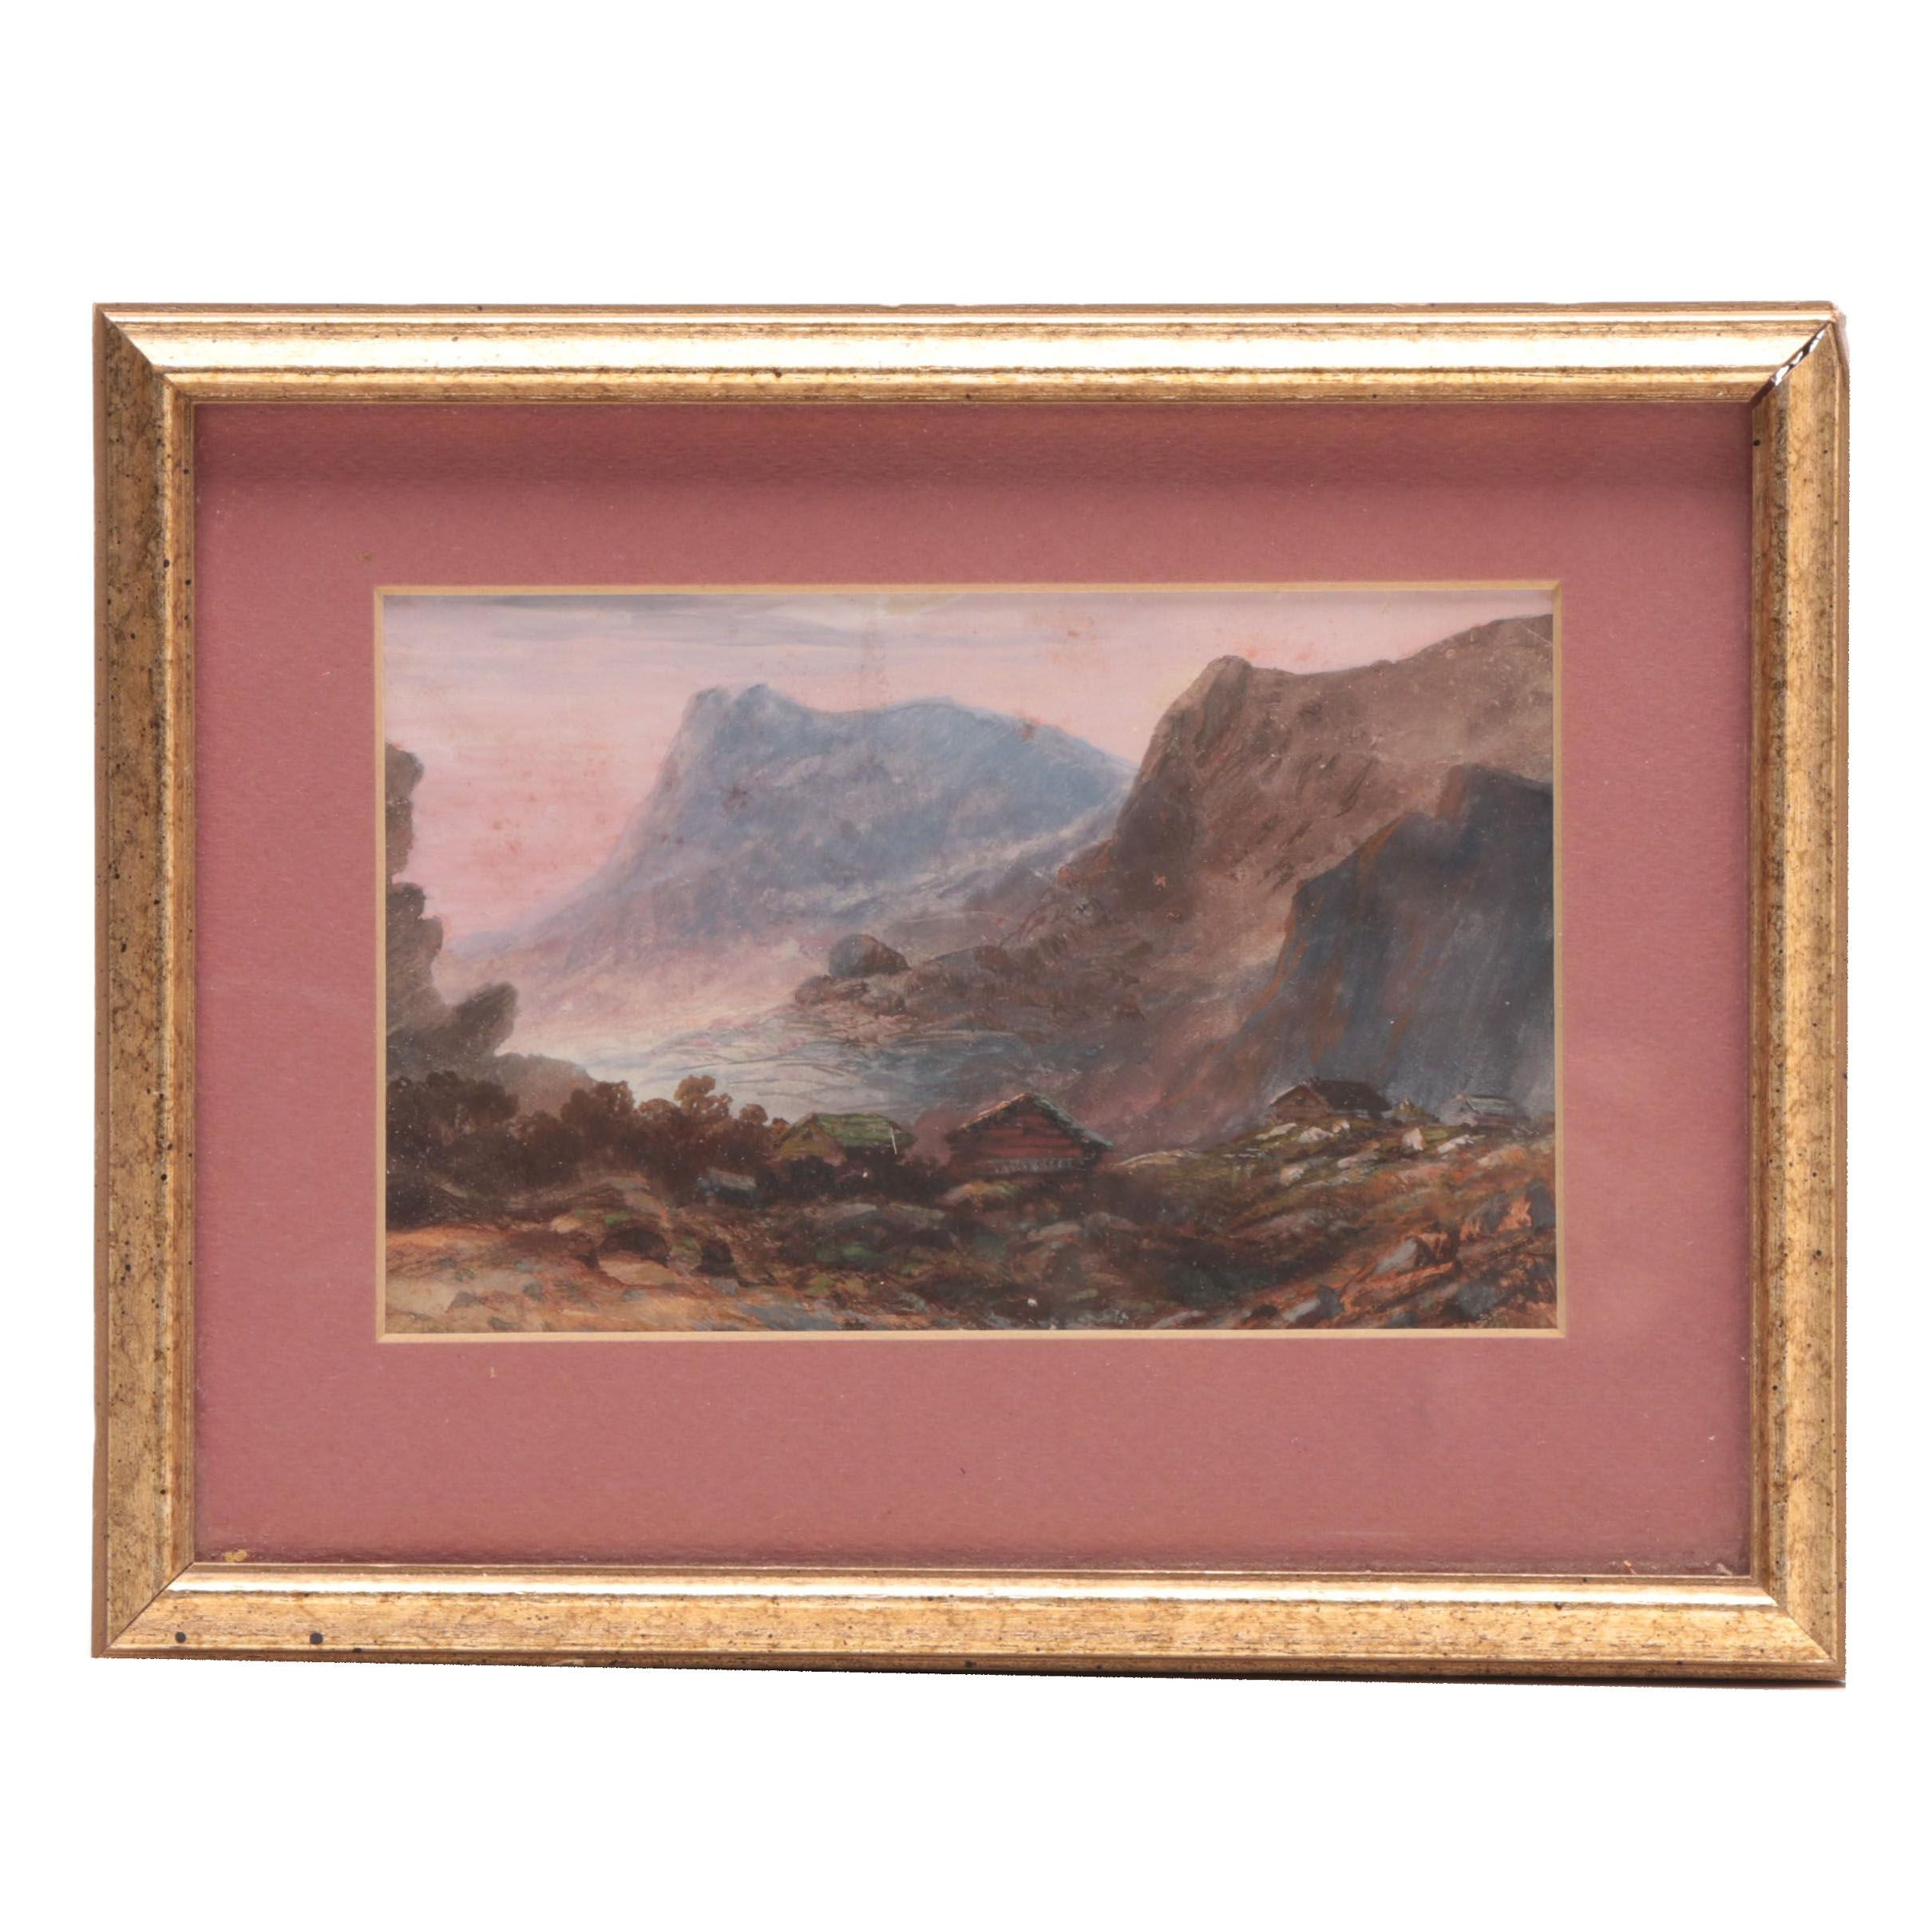 Early 20th Century Gouache and Watercolor Painting of Coastal Landscape